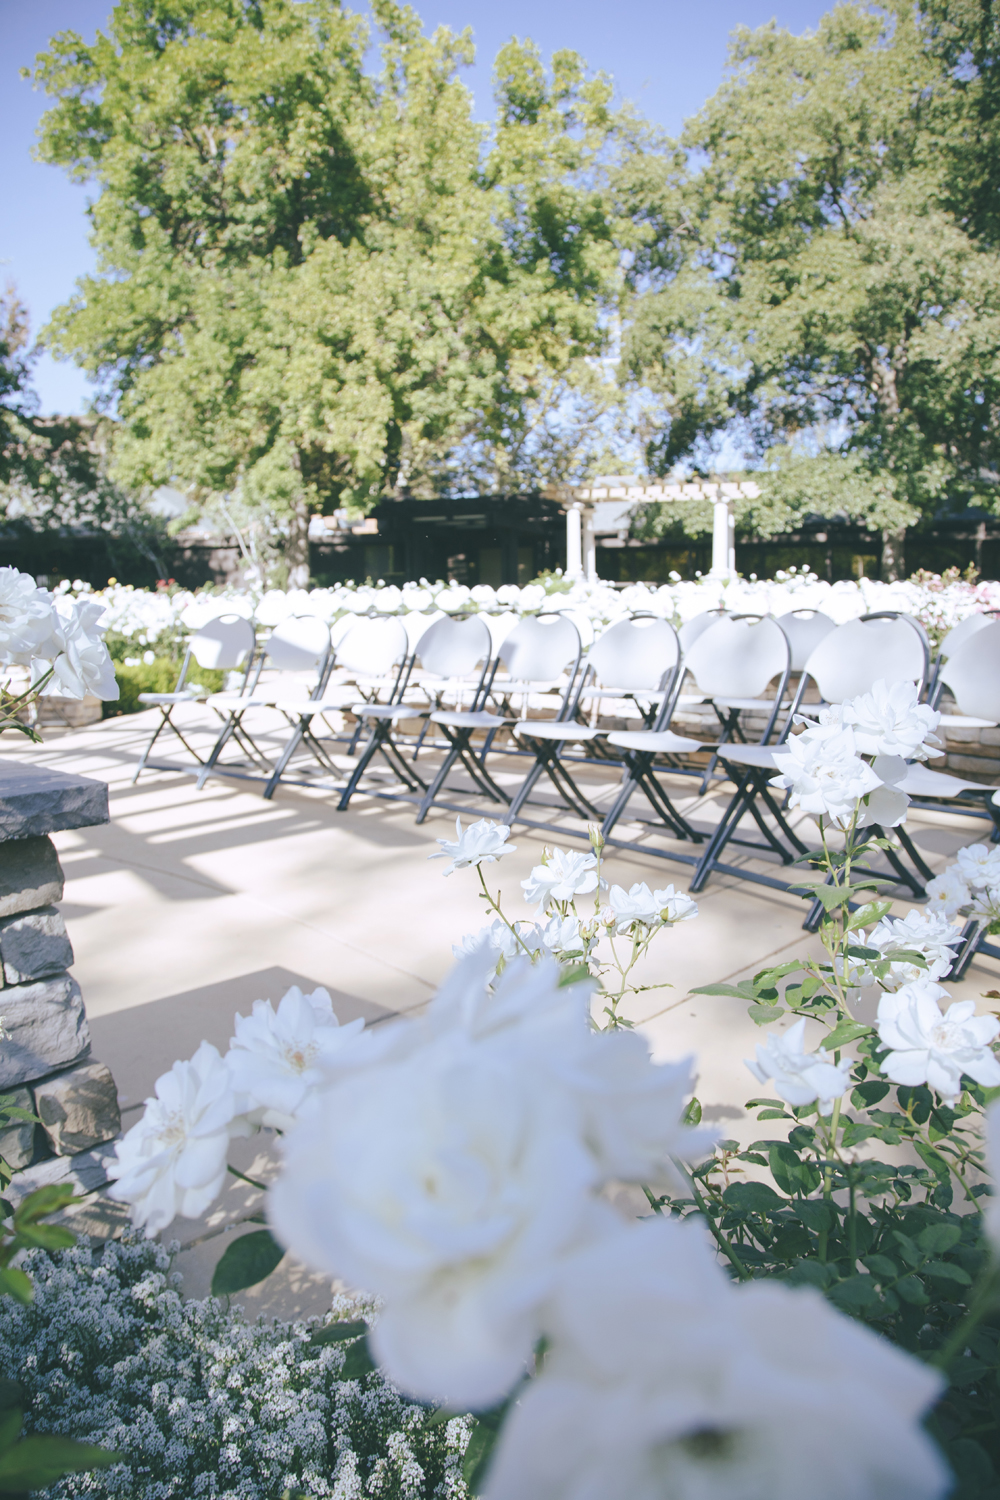 Wedding-photographer-at-Creekside-Rose-Garden-Chico-CA19.jpg